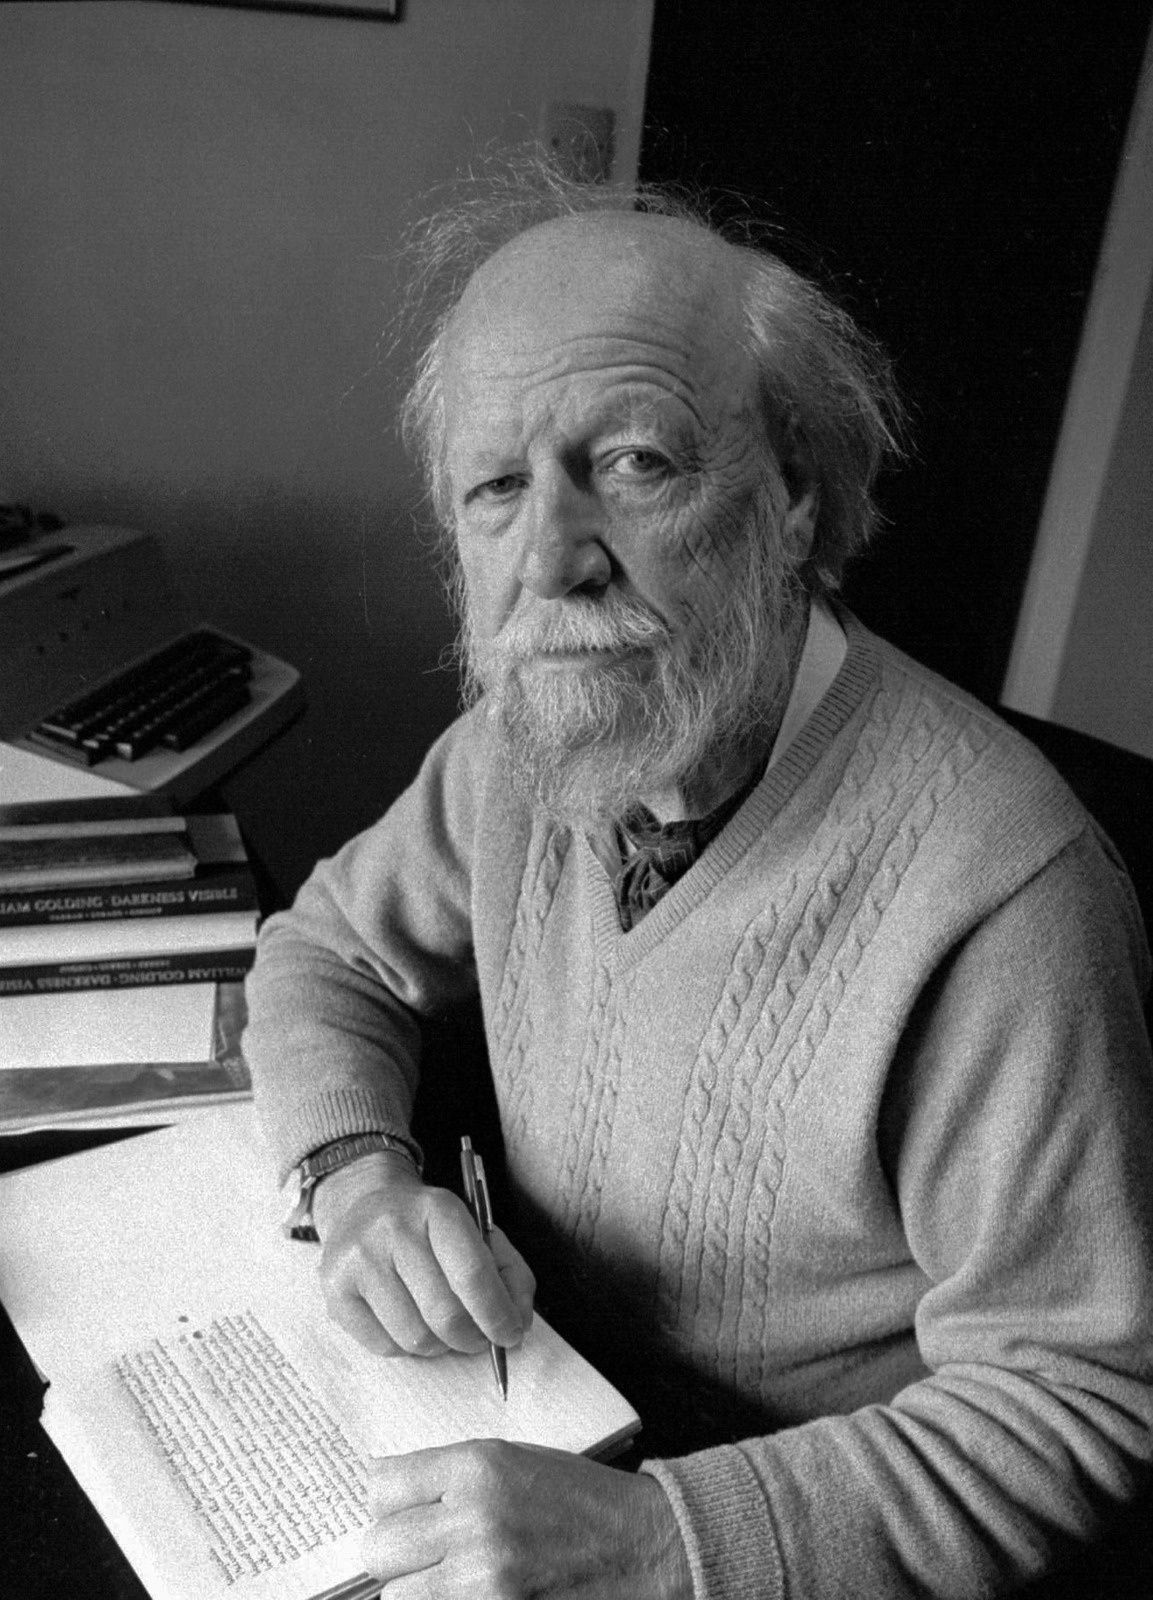 """lord of the flies by william golding essay Below you will find five outstanding thesis statements for """"lord of the flies"""" by  william golding that can be used as essay starters or paper topics all five."""